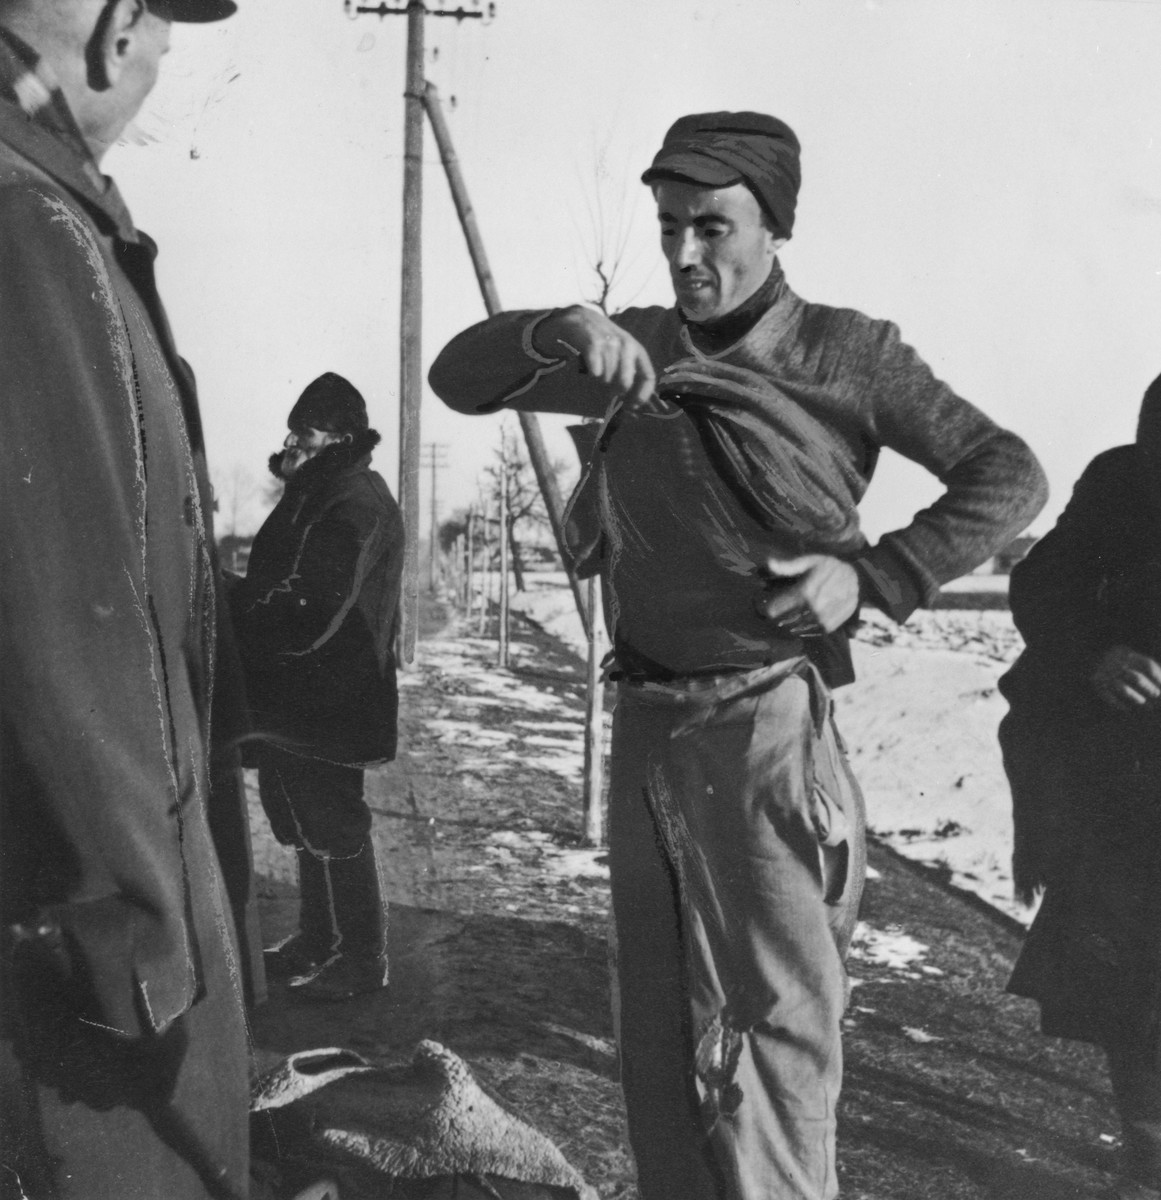 A Jewish laborer from the Radom ghetto is forced to show a German guard what is concealed beneath his sweater.